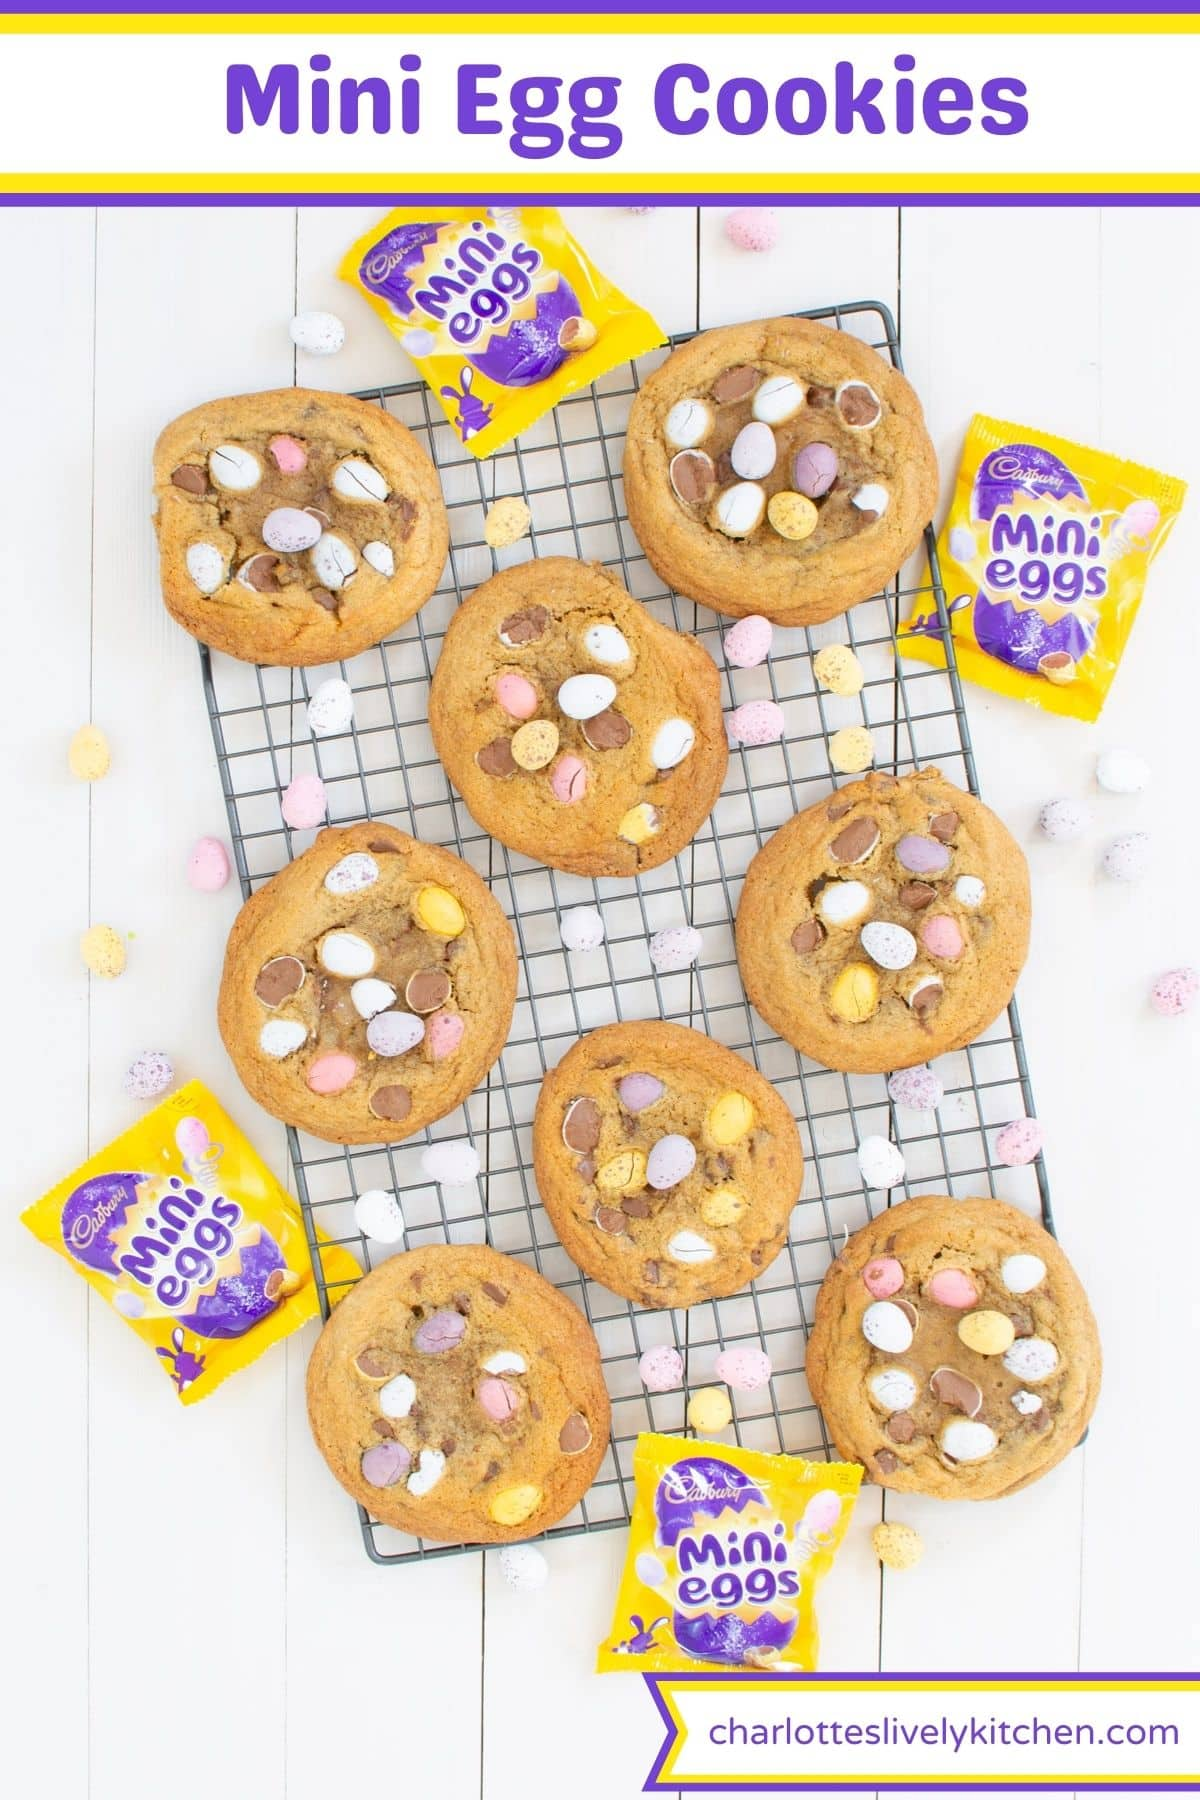 Mini egg cookies on a cooling rack with text saying Mini Egg Cookies.